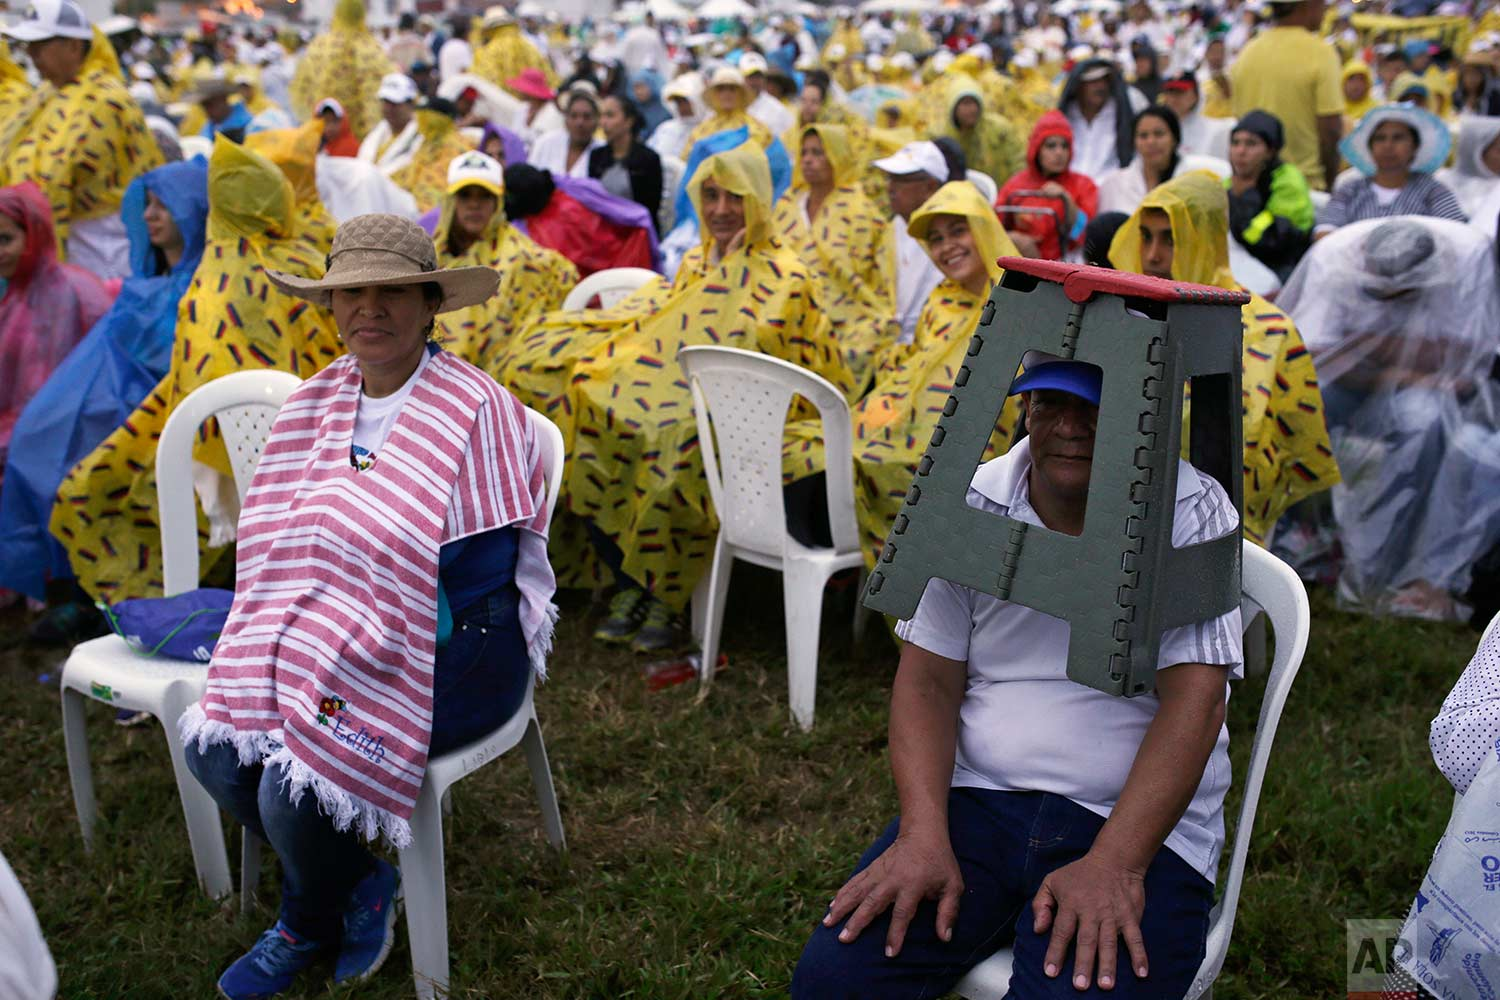 In this Friday, Sept. 8, 2017 photo, people wait under a light rain for the start of a Holy Mass celebrated by Pope Francis in Villavicencio, Colombia. (AP Photo/Ricardo Mazalan)